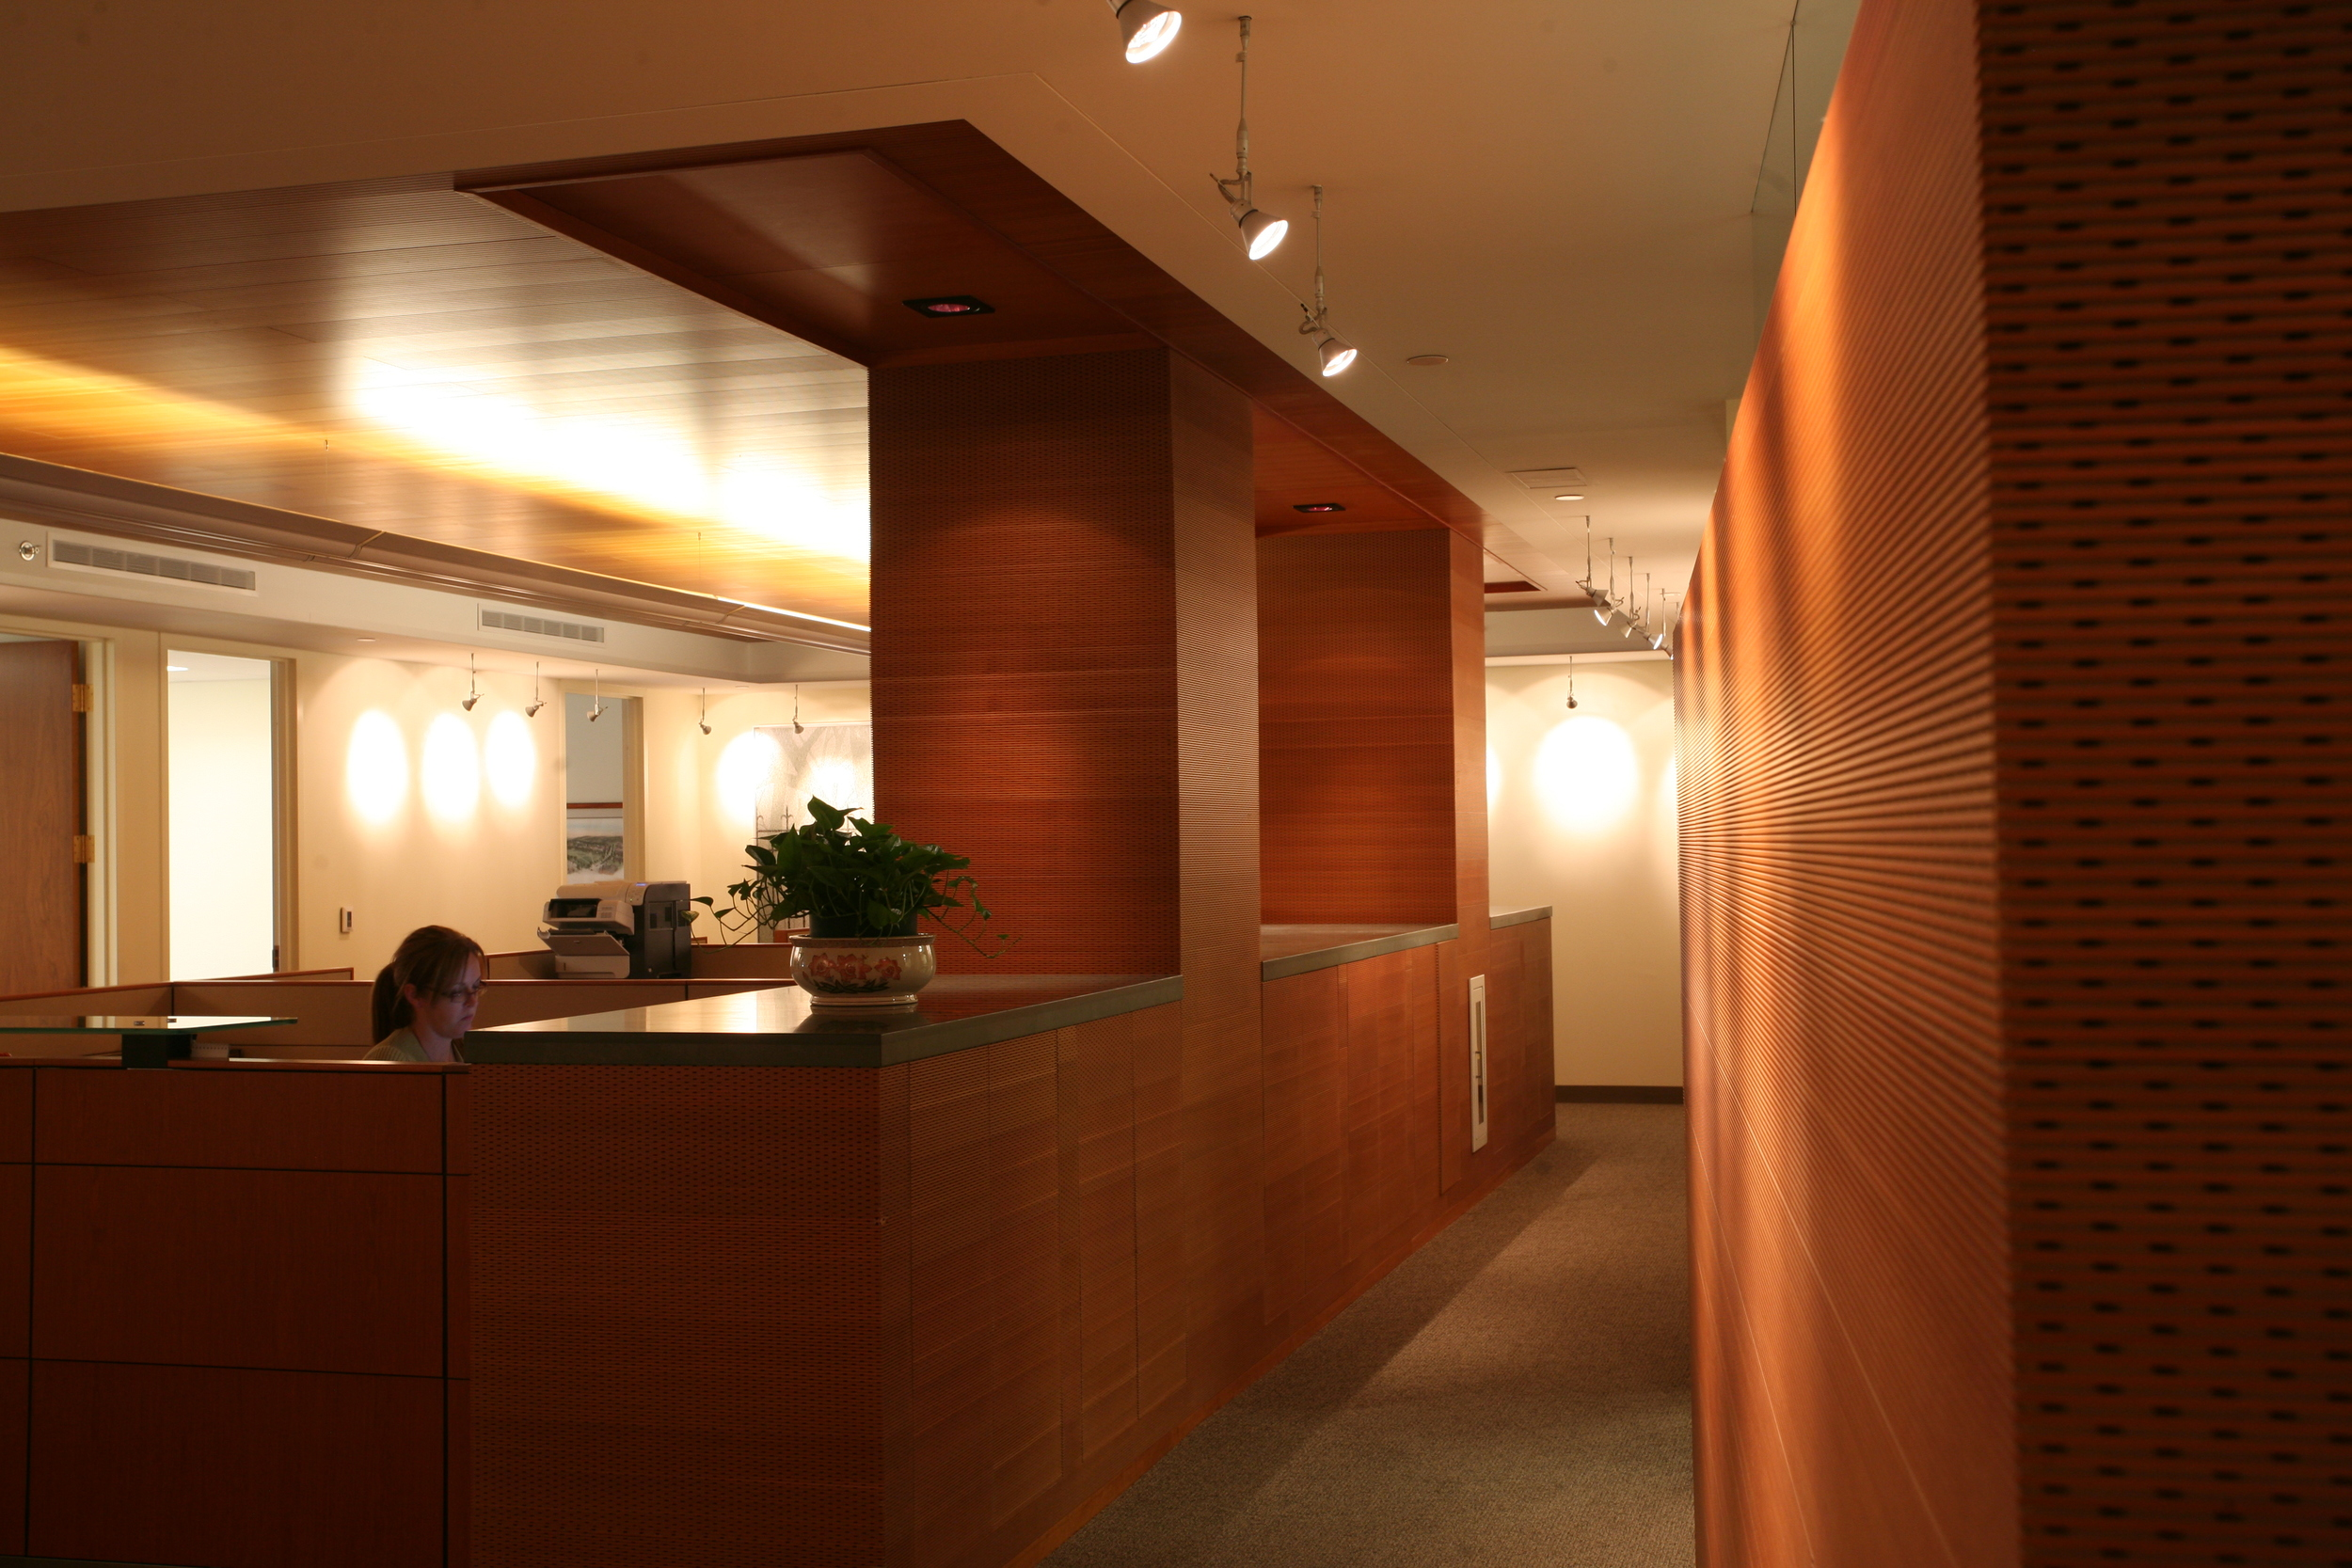 pho-int-acoustic cherry wall-72ppi-61x41.JPG